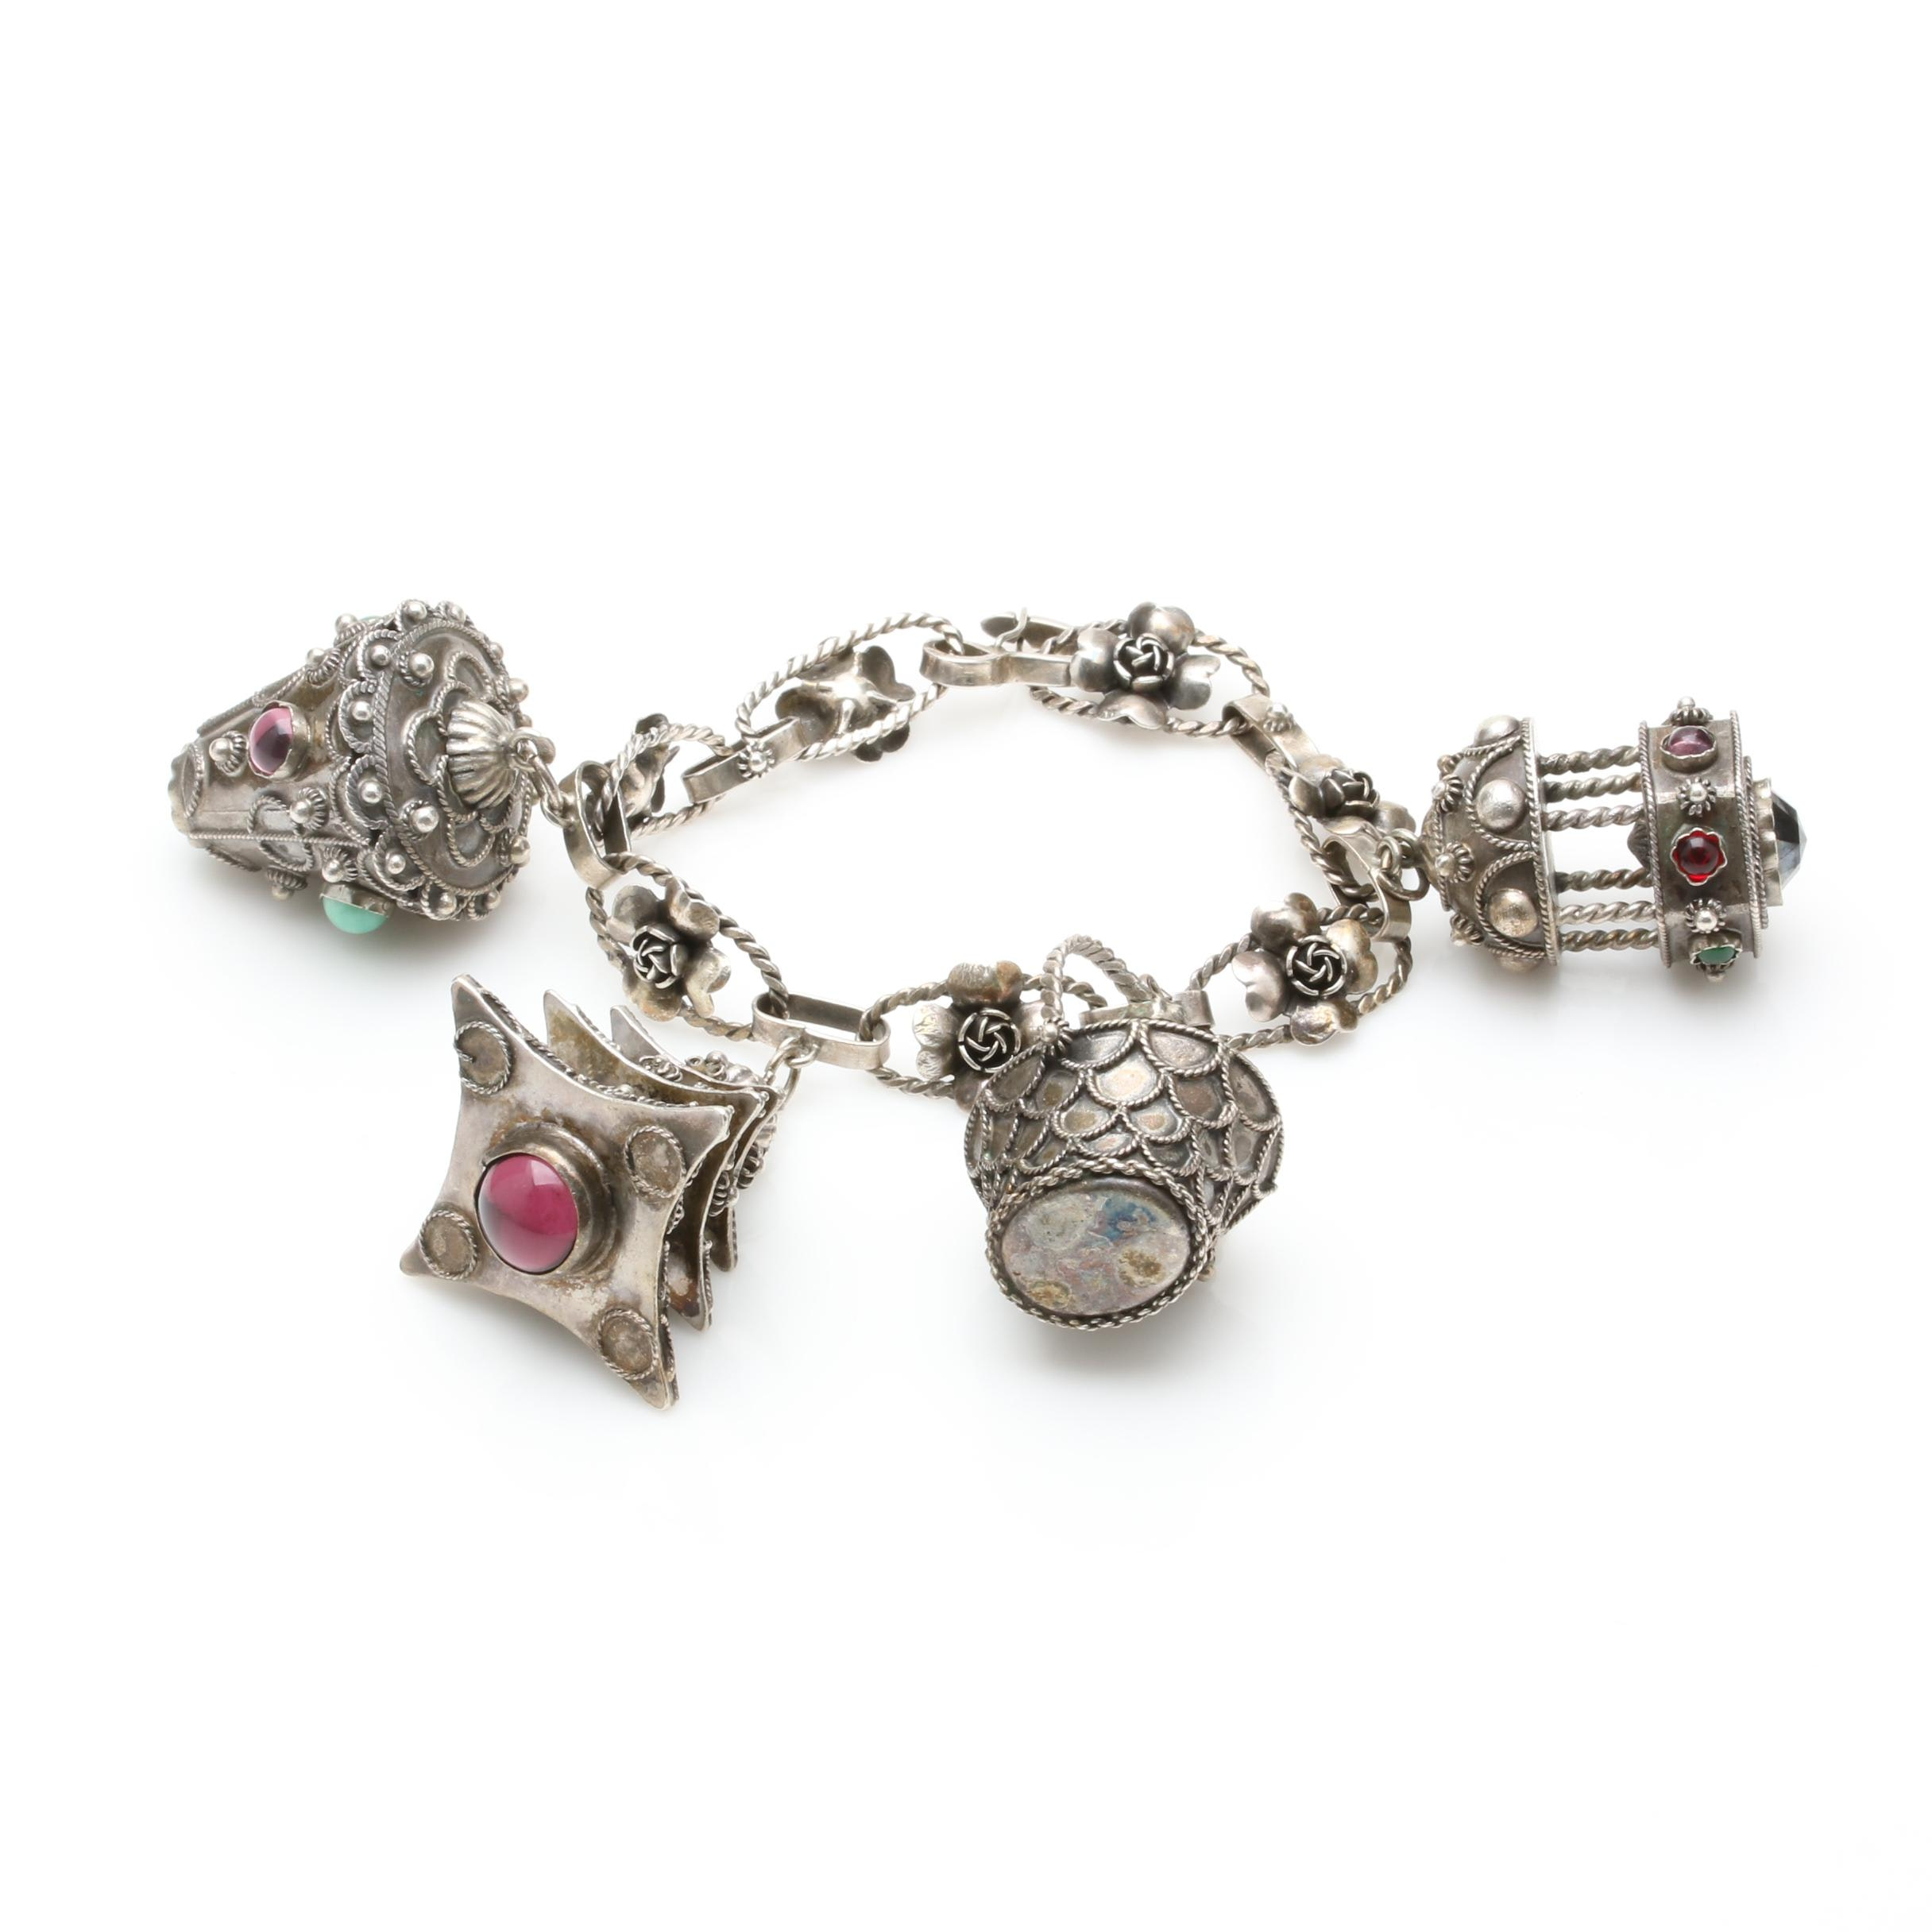 Vintage 800 Silver Charm Bracelet With Glass Accents